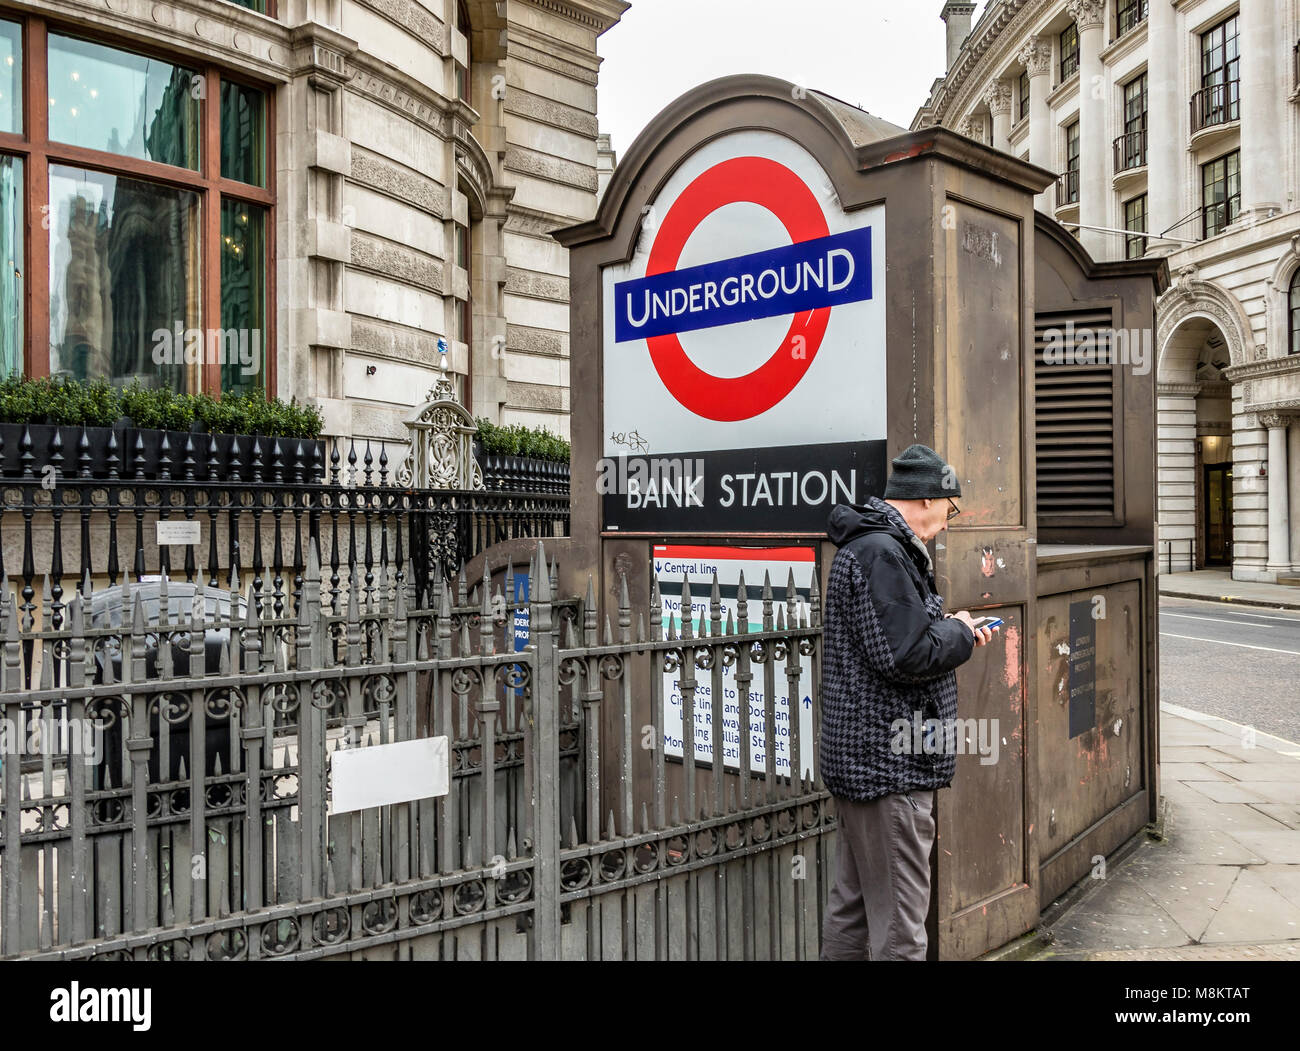 Man looks at his phone outside Bank Station entrance in The City Of London - Stock Image